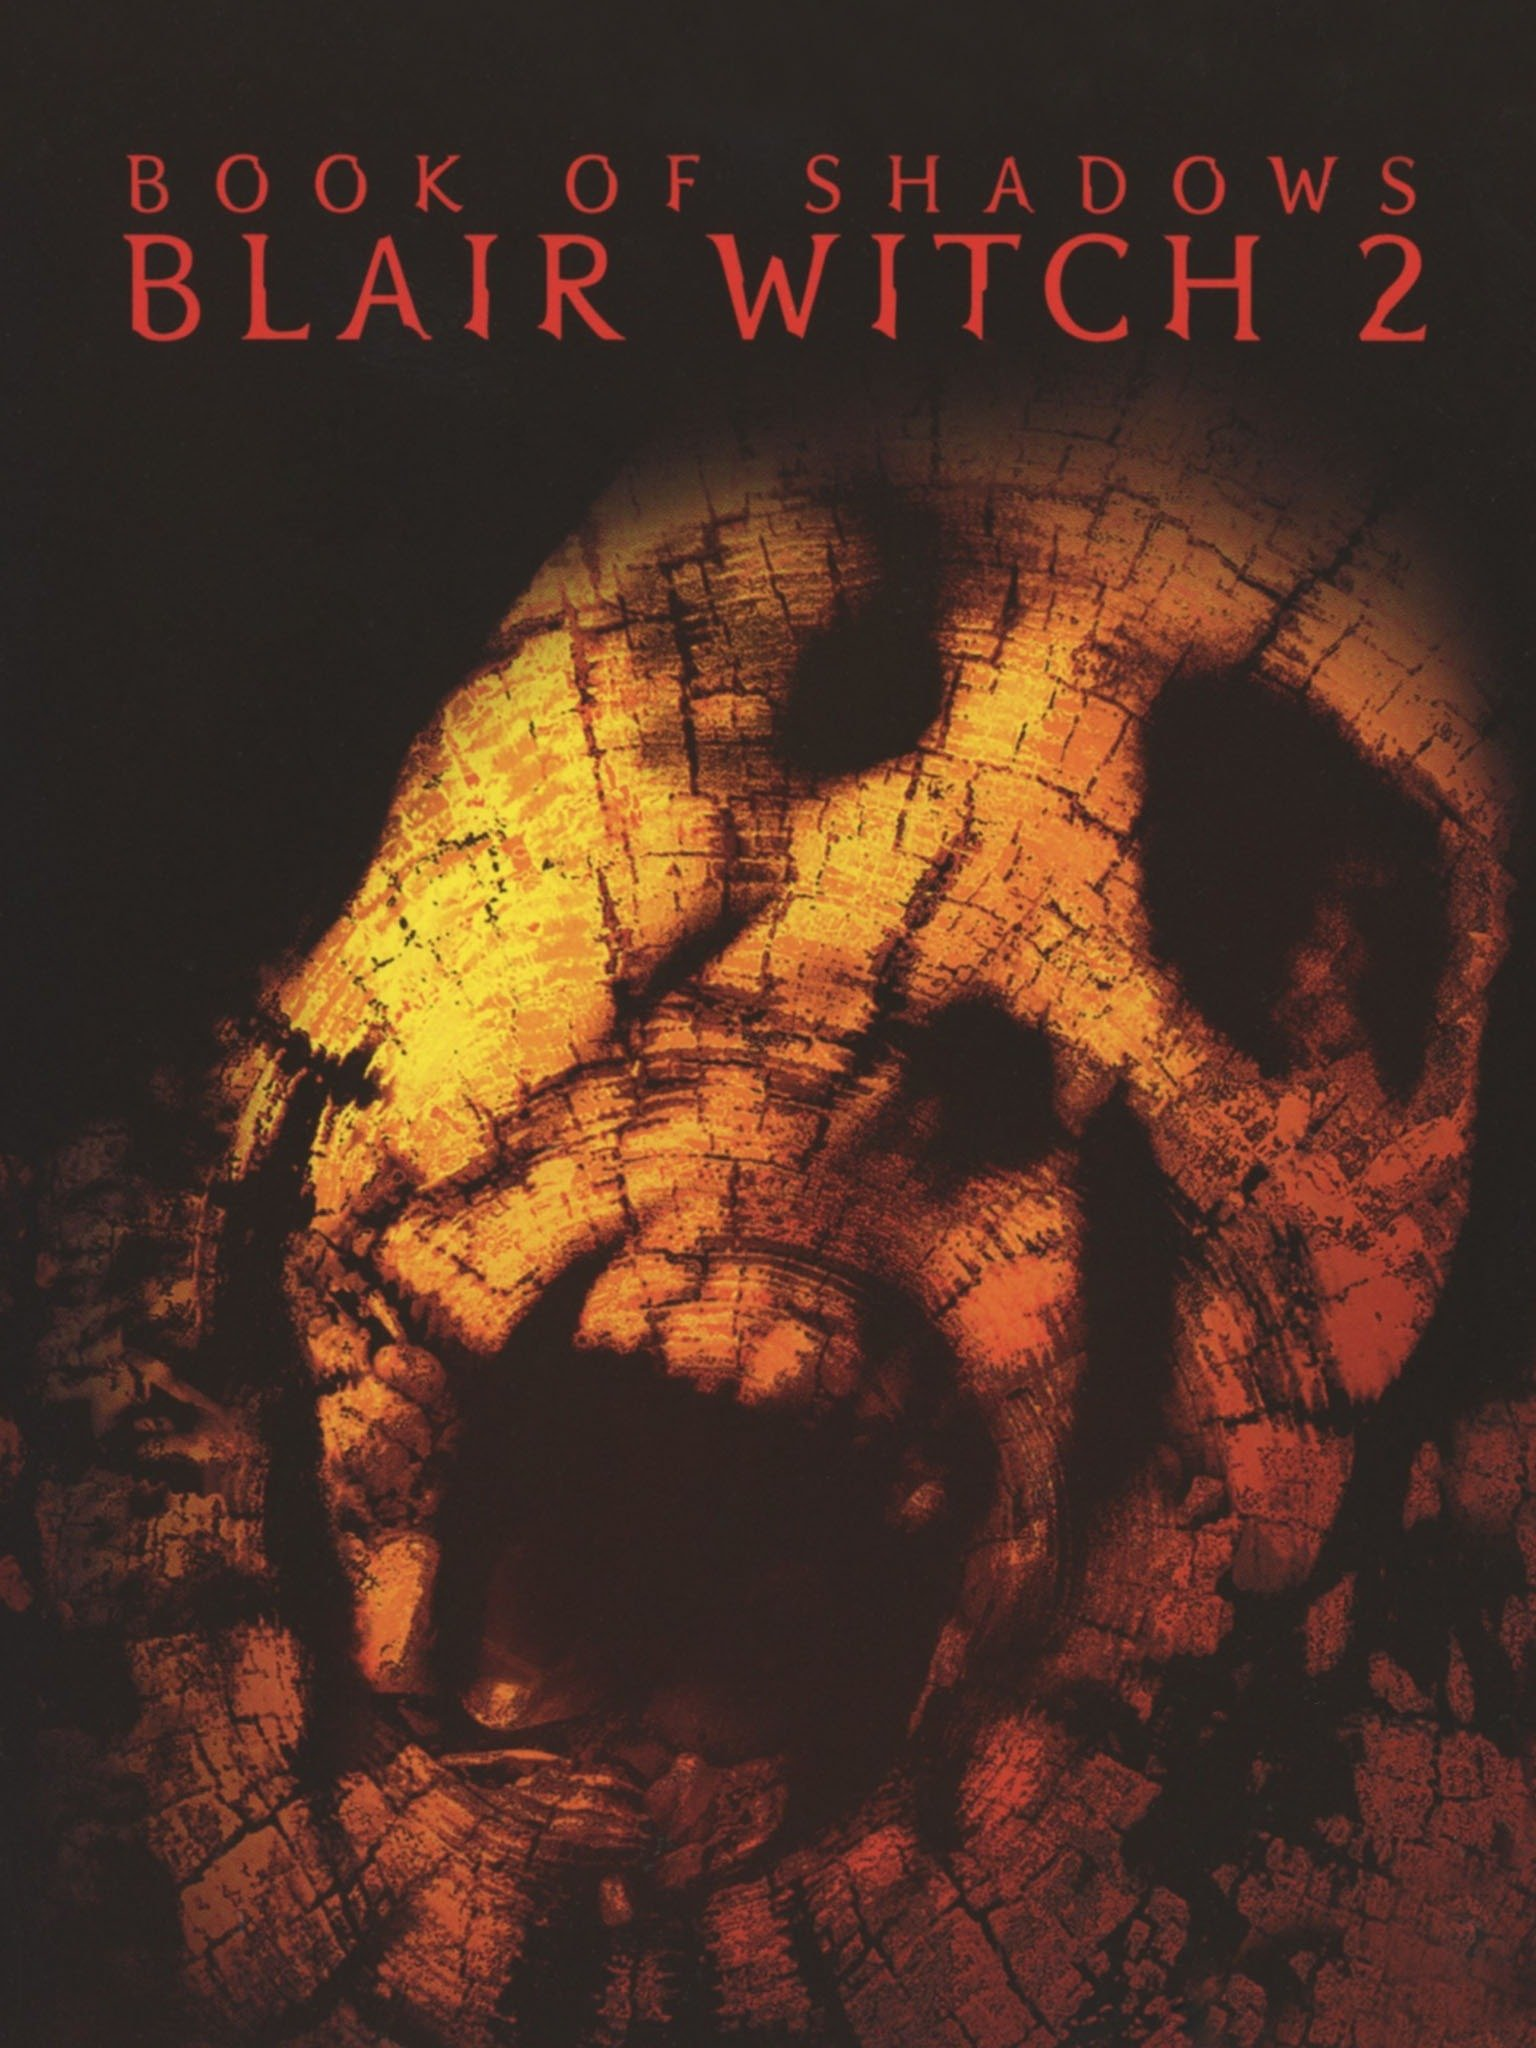 Blair Witch 2016 Streaming : blair, witch, streaming, Shadows:, Blair, Witch, (2000), Rotten, Tomatoes